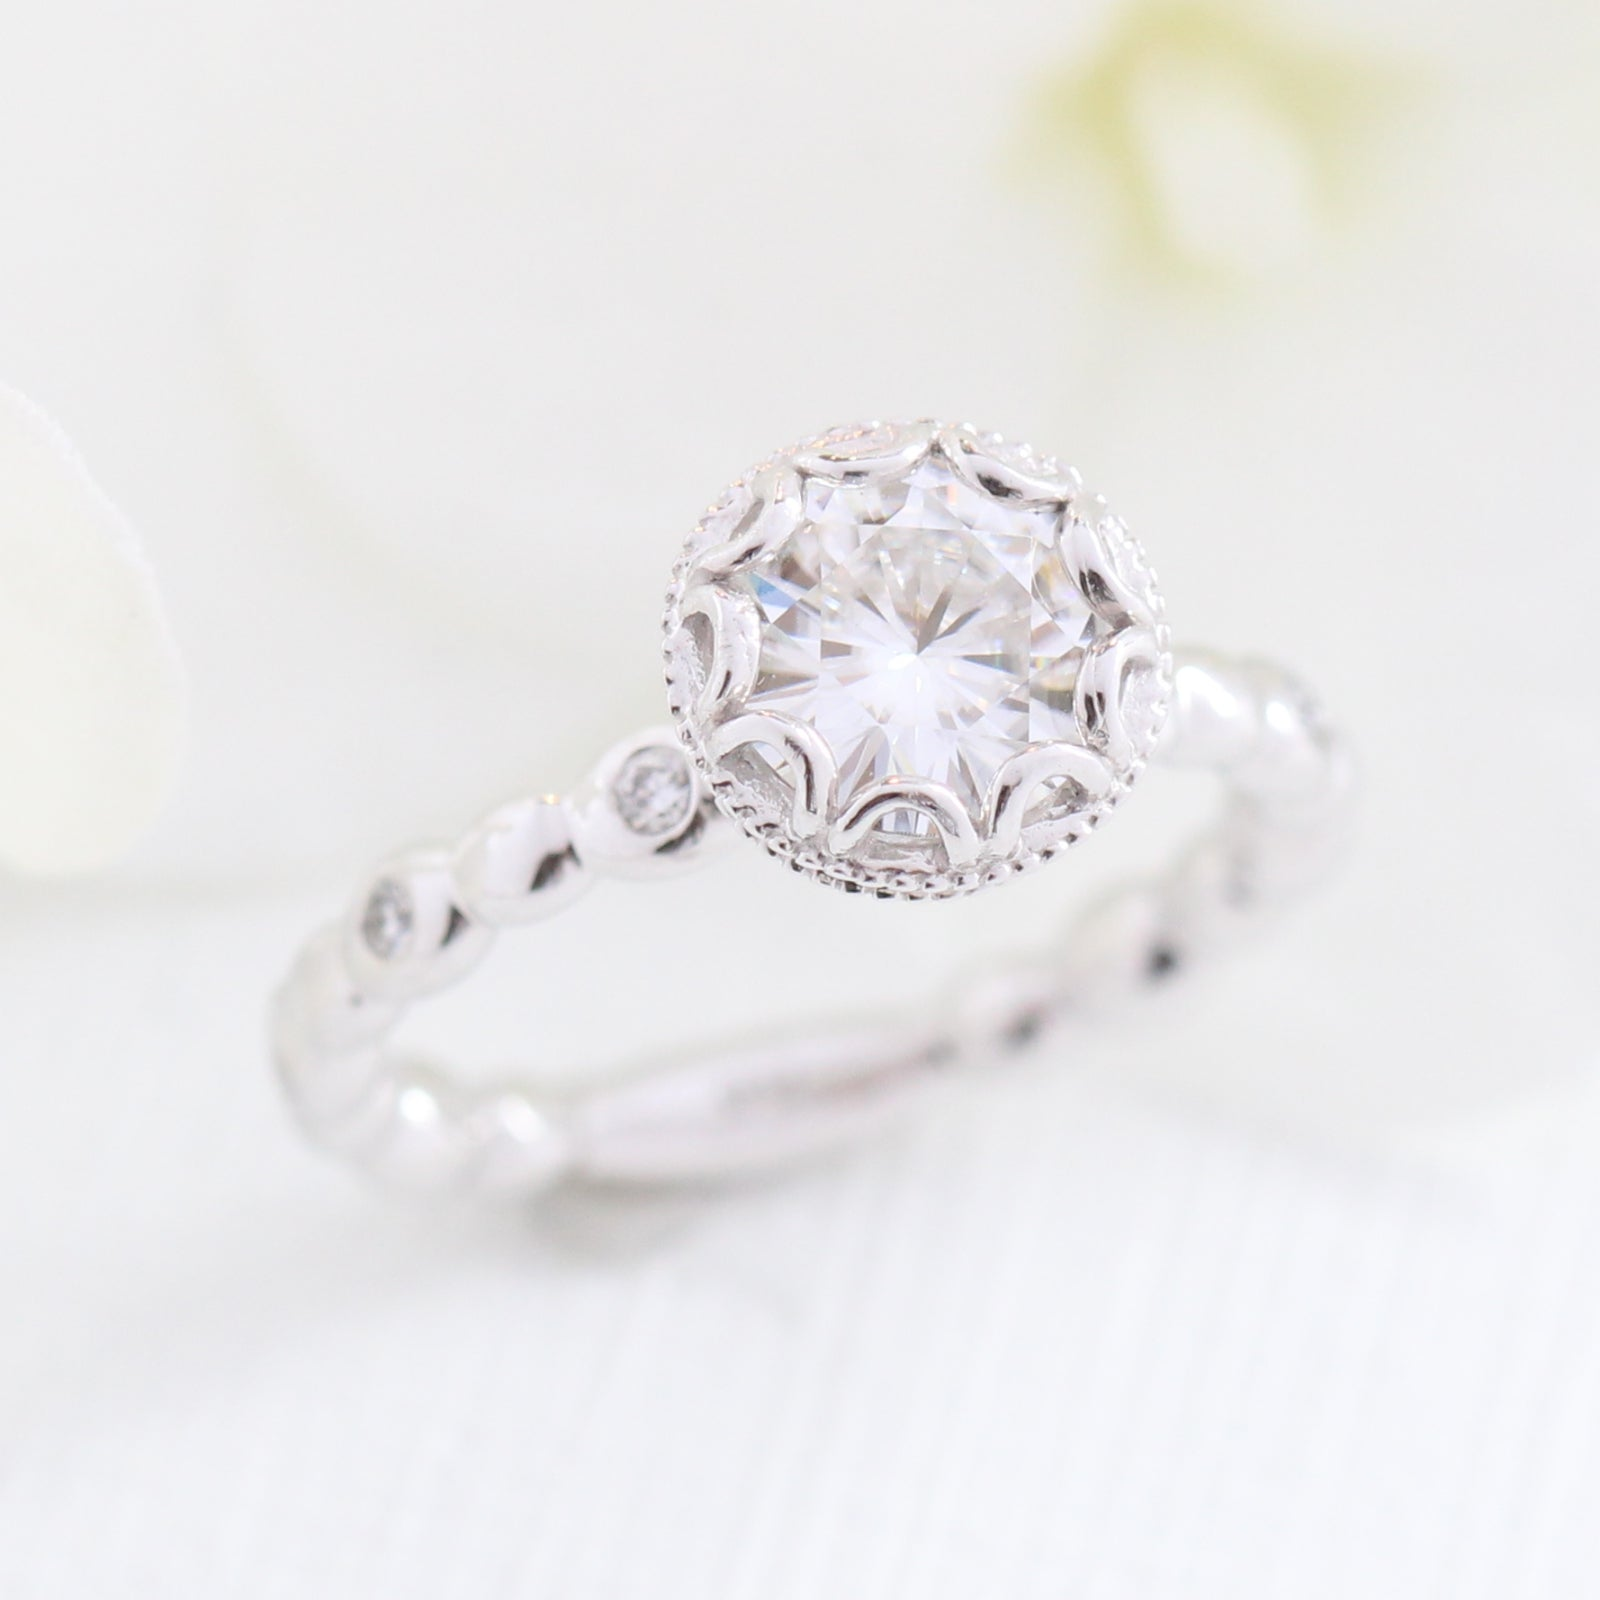 8434f39350863f Floral Solitaire Ring in Pebble Band w/ 7mm Moissanite and Diamond   La  More Design